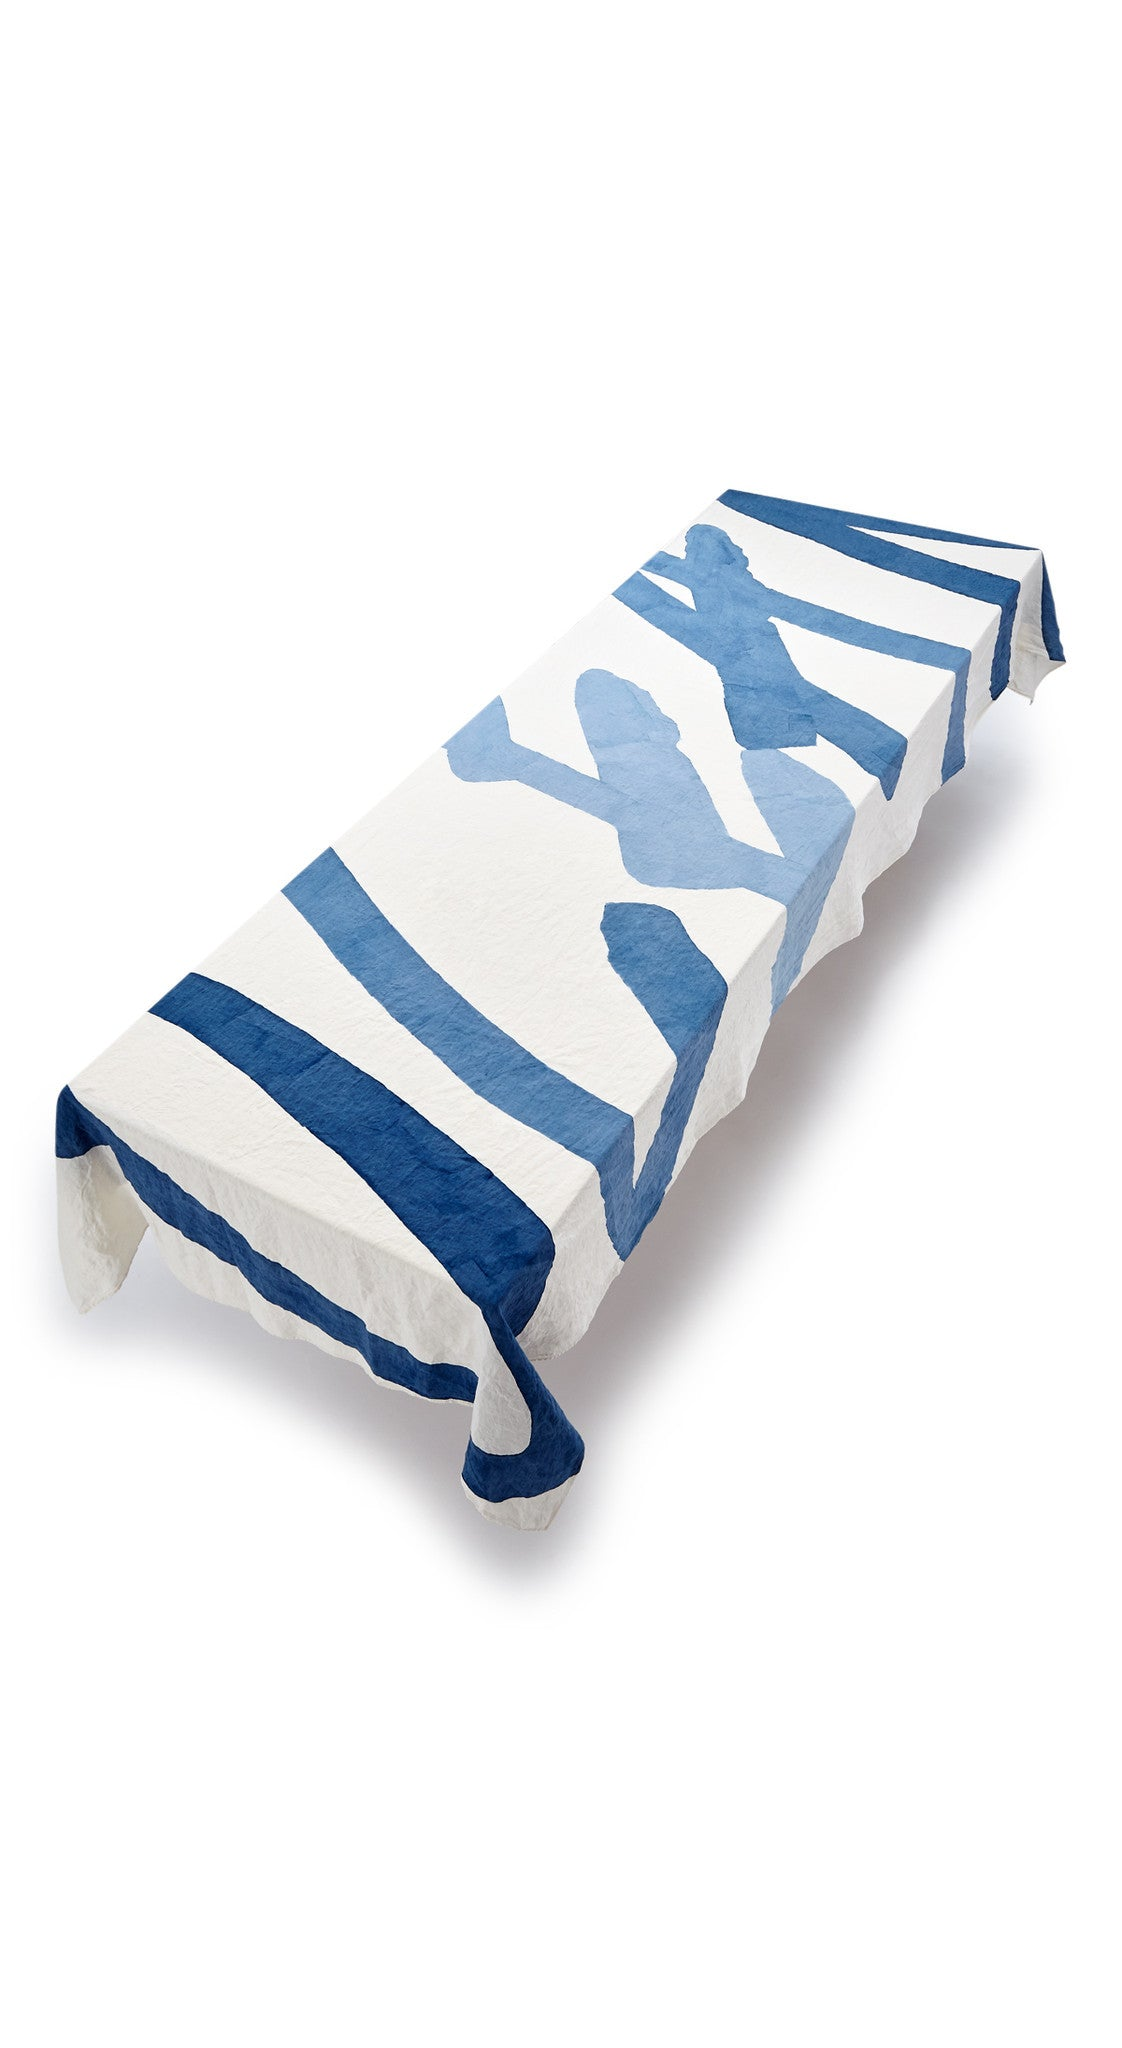 Ocean Word Linen Tablecloth in Waves of Blue